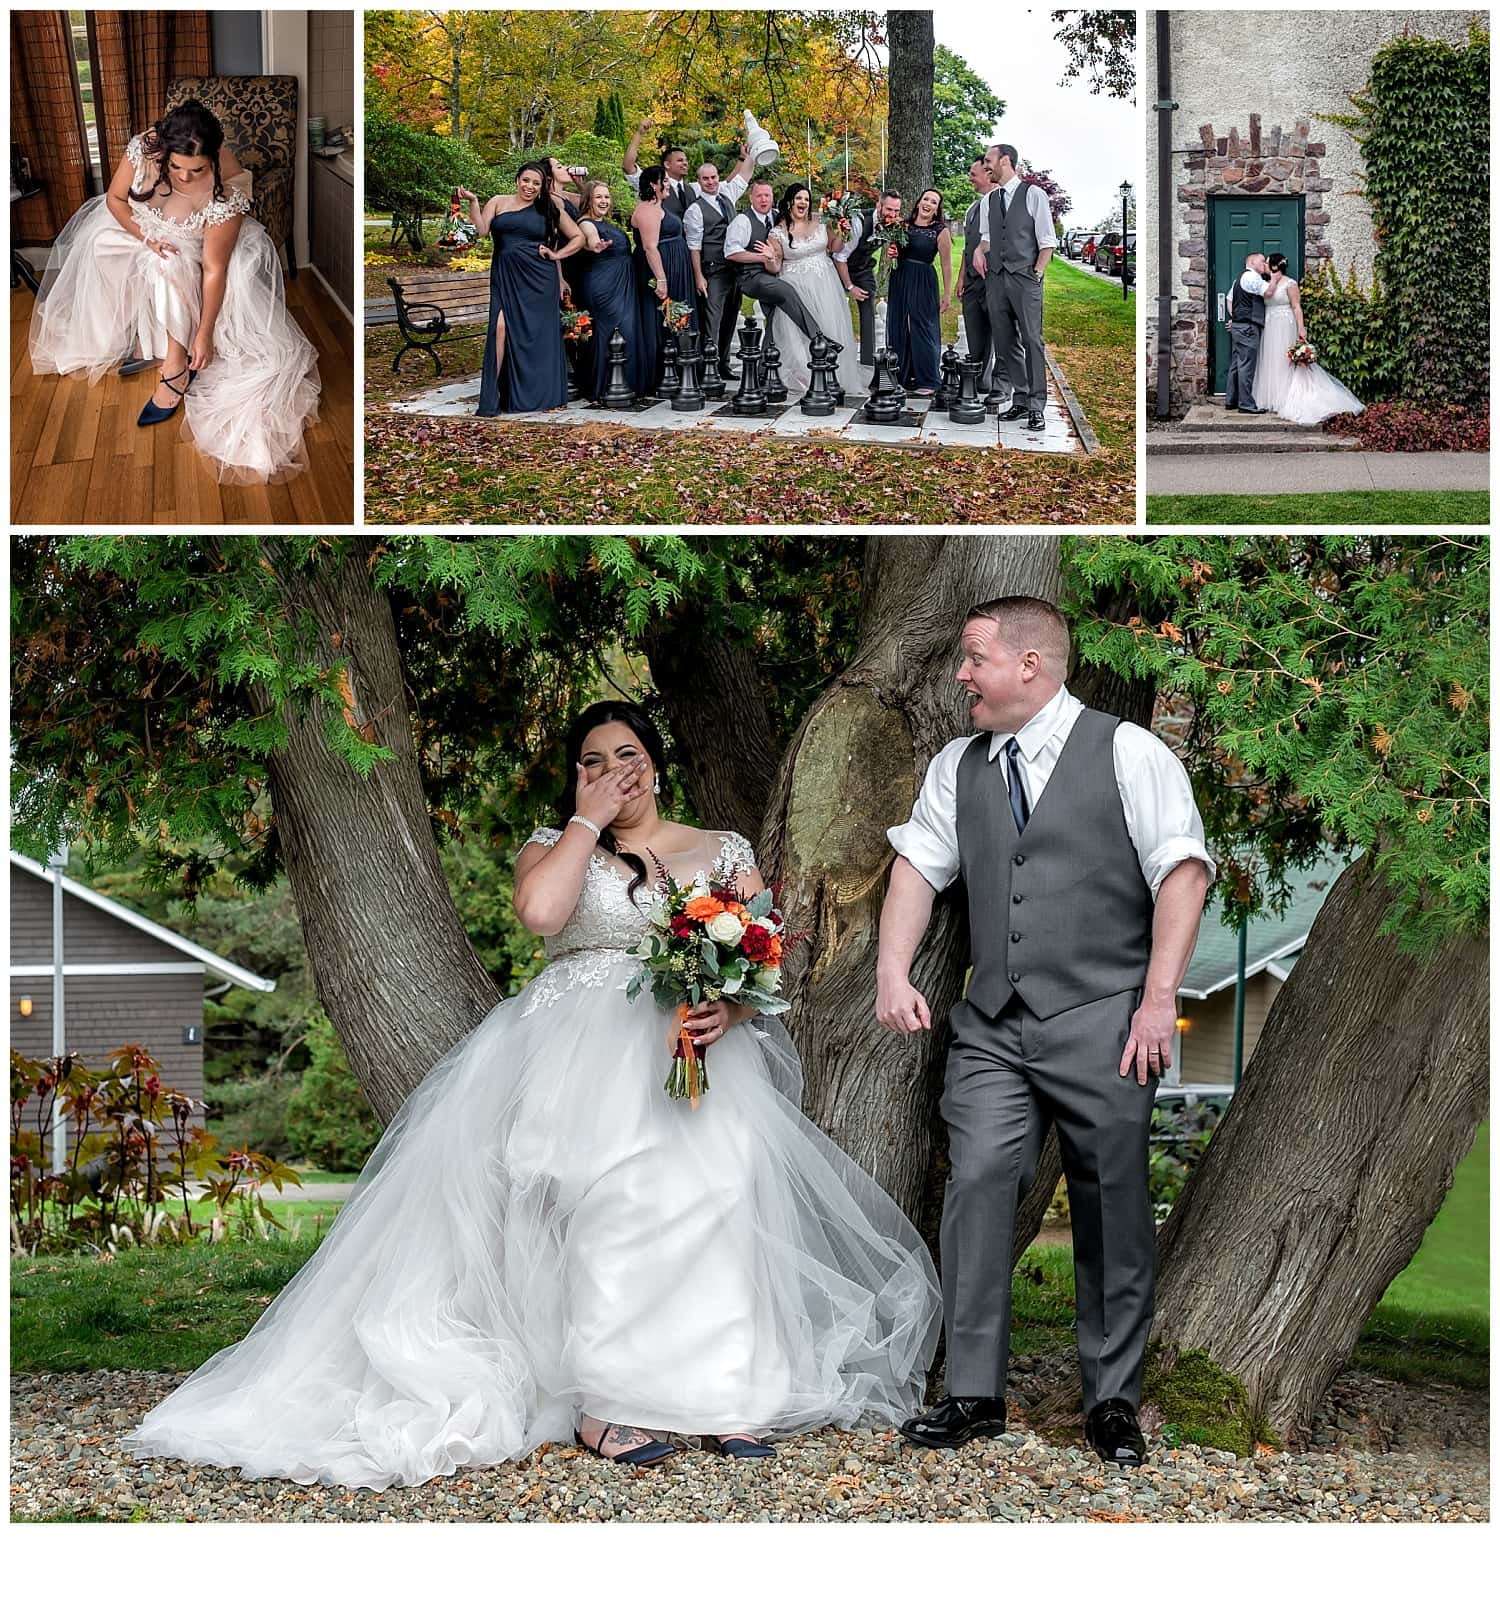 A wedding with the bride and groom at Digby Pines Resort.